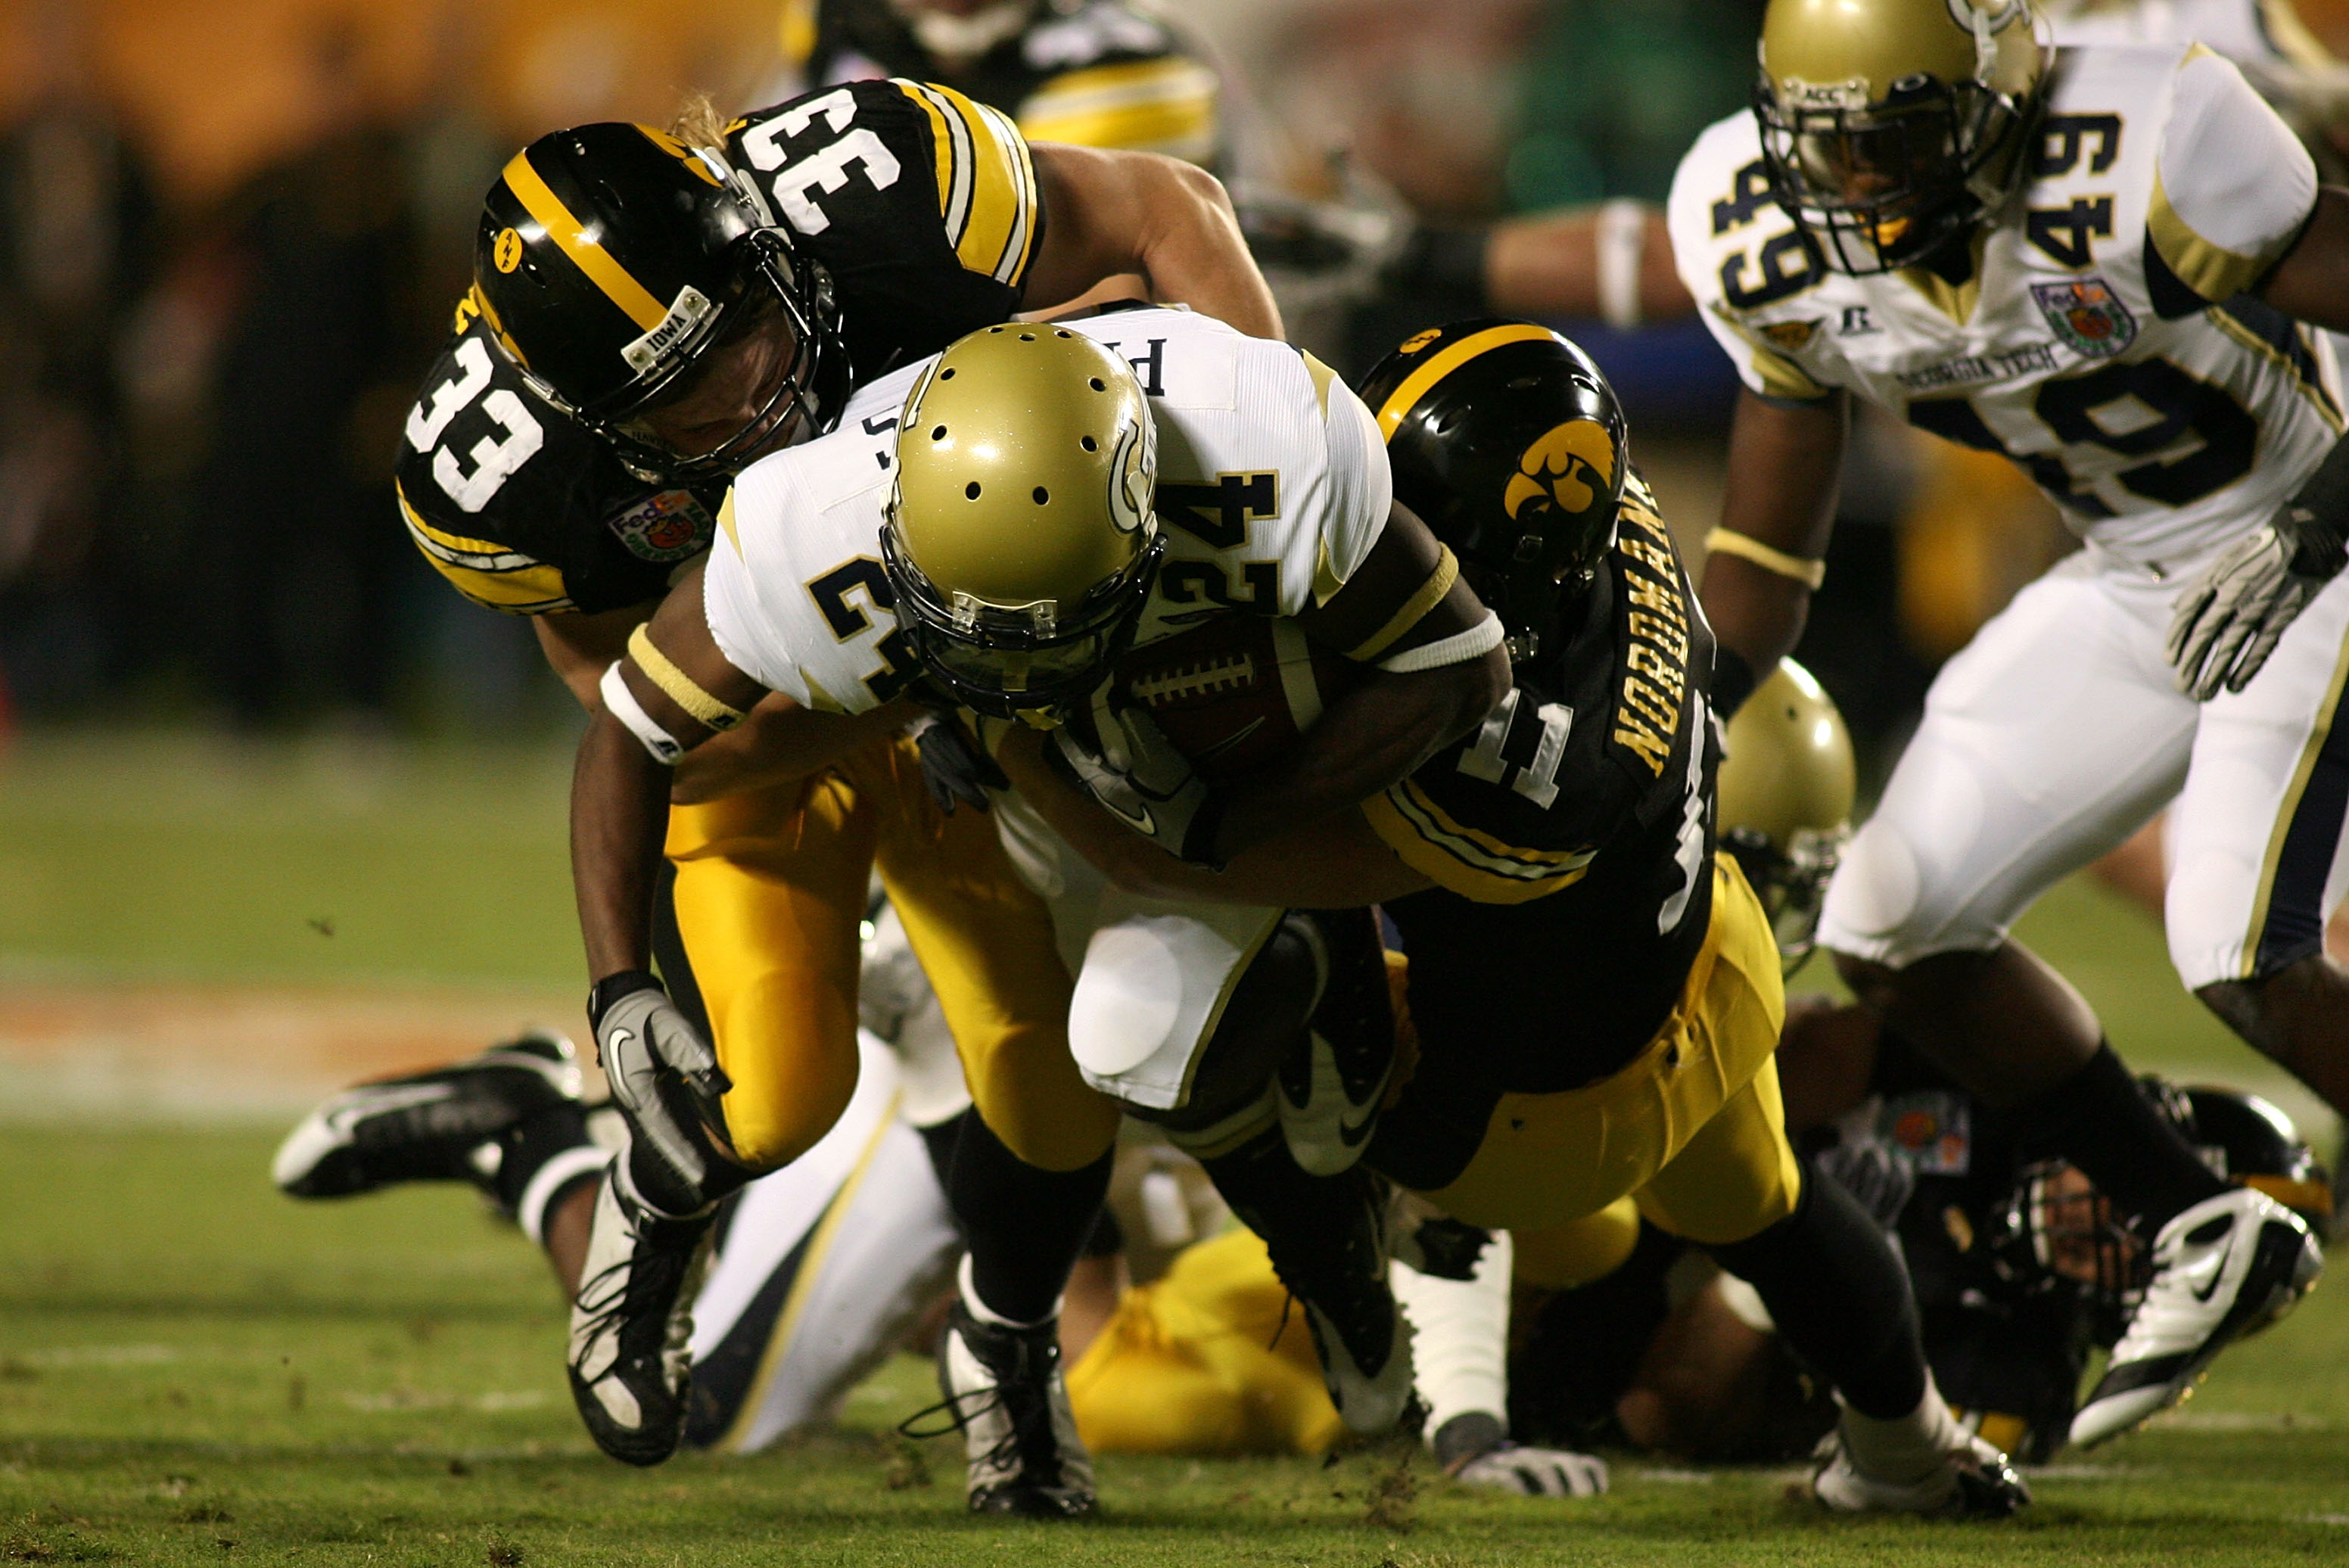 MIAMI GARDENS, FL - JANUARY 05:  Embry Peeples of the Georgia Tech Yellow Jackets is bought down by Jeff Tarpinian #33 and Don Nordmann #11 of the Iowa Hawkeyes during the FedEx Orange Bowl at Land Shark Stadium on January 5, 2010 in Miami Gardens, Florid